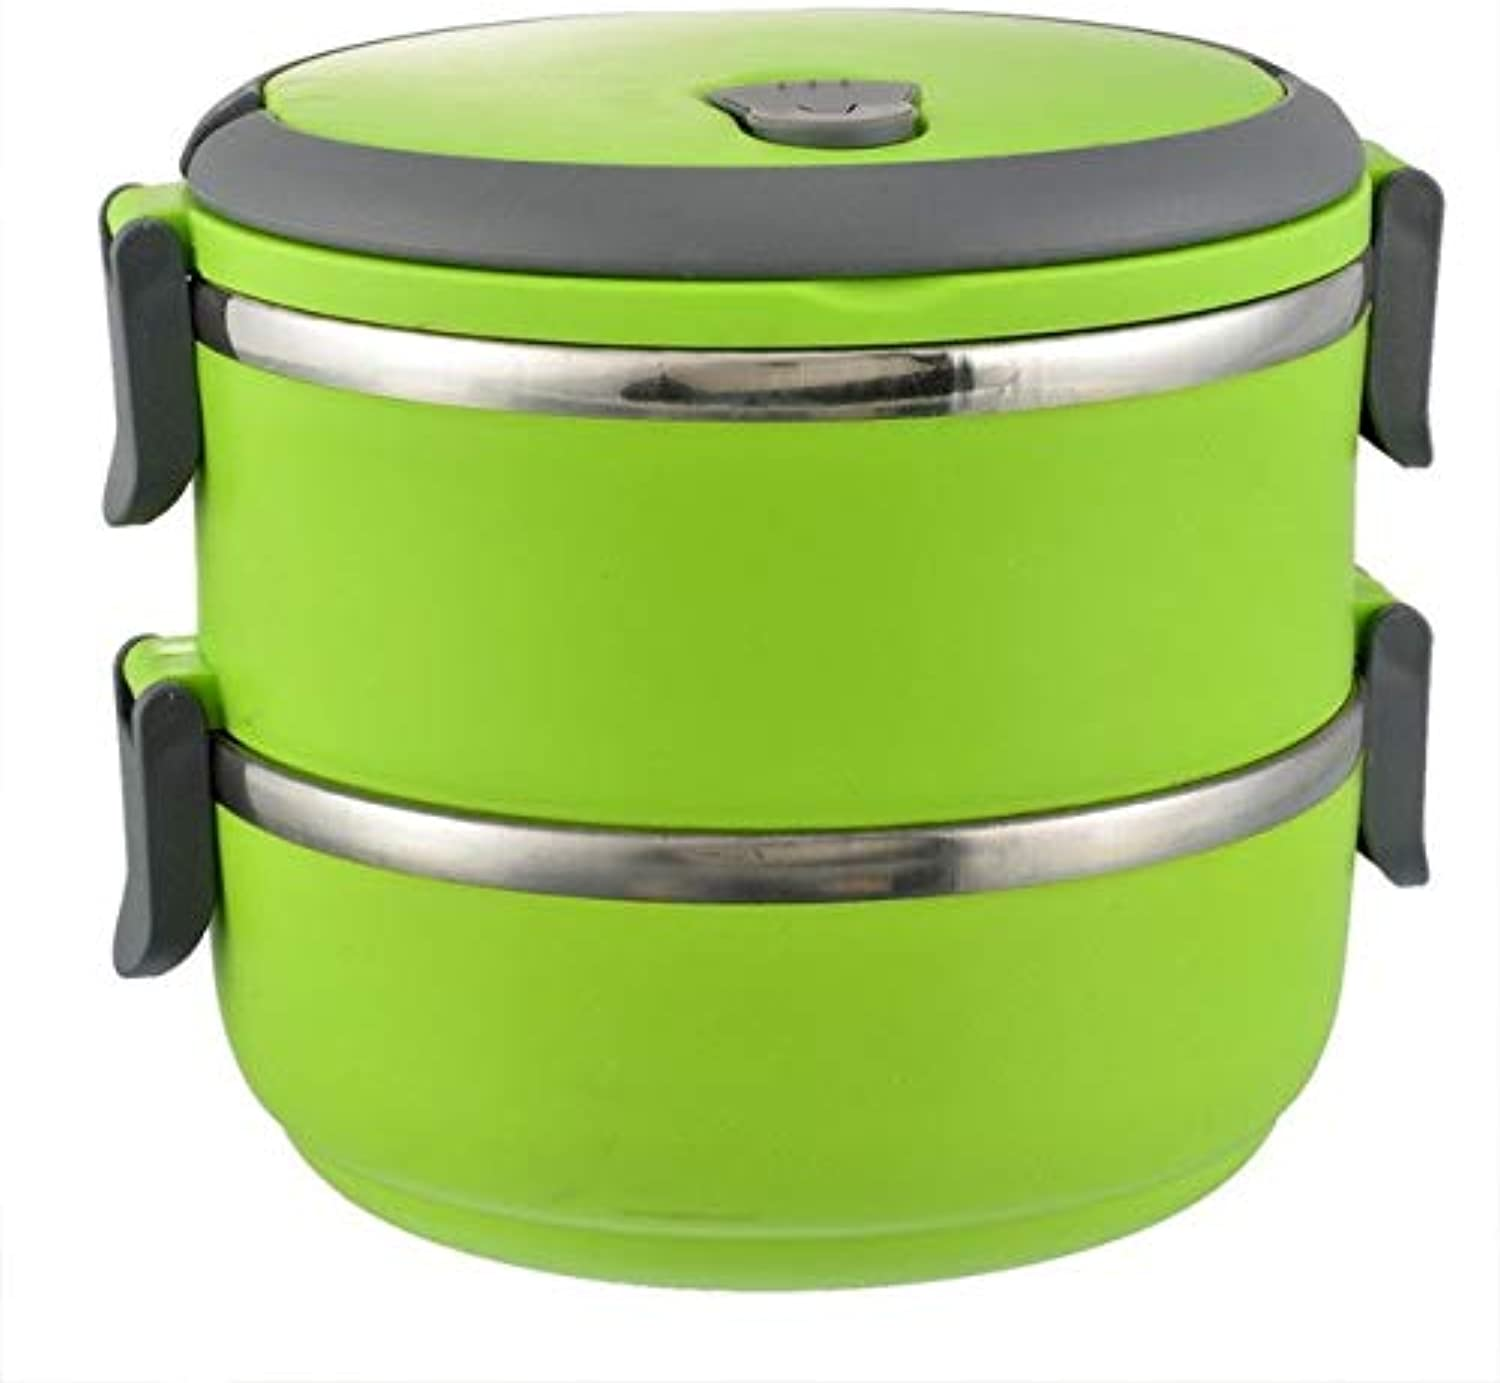 Farmerly Hoomall 1PC Food Container Snack Box Bento Dinnerware Sets Stainless Steel Round Insulation Bento with Handle Kitchen Tools   Green 2 Layers